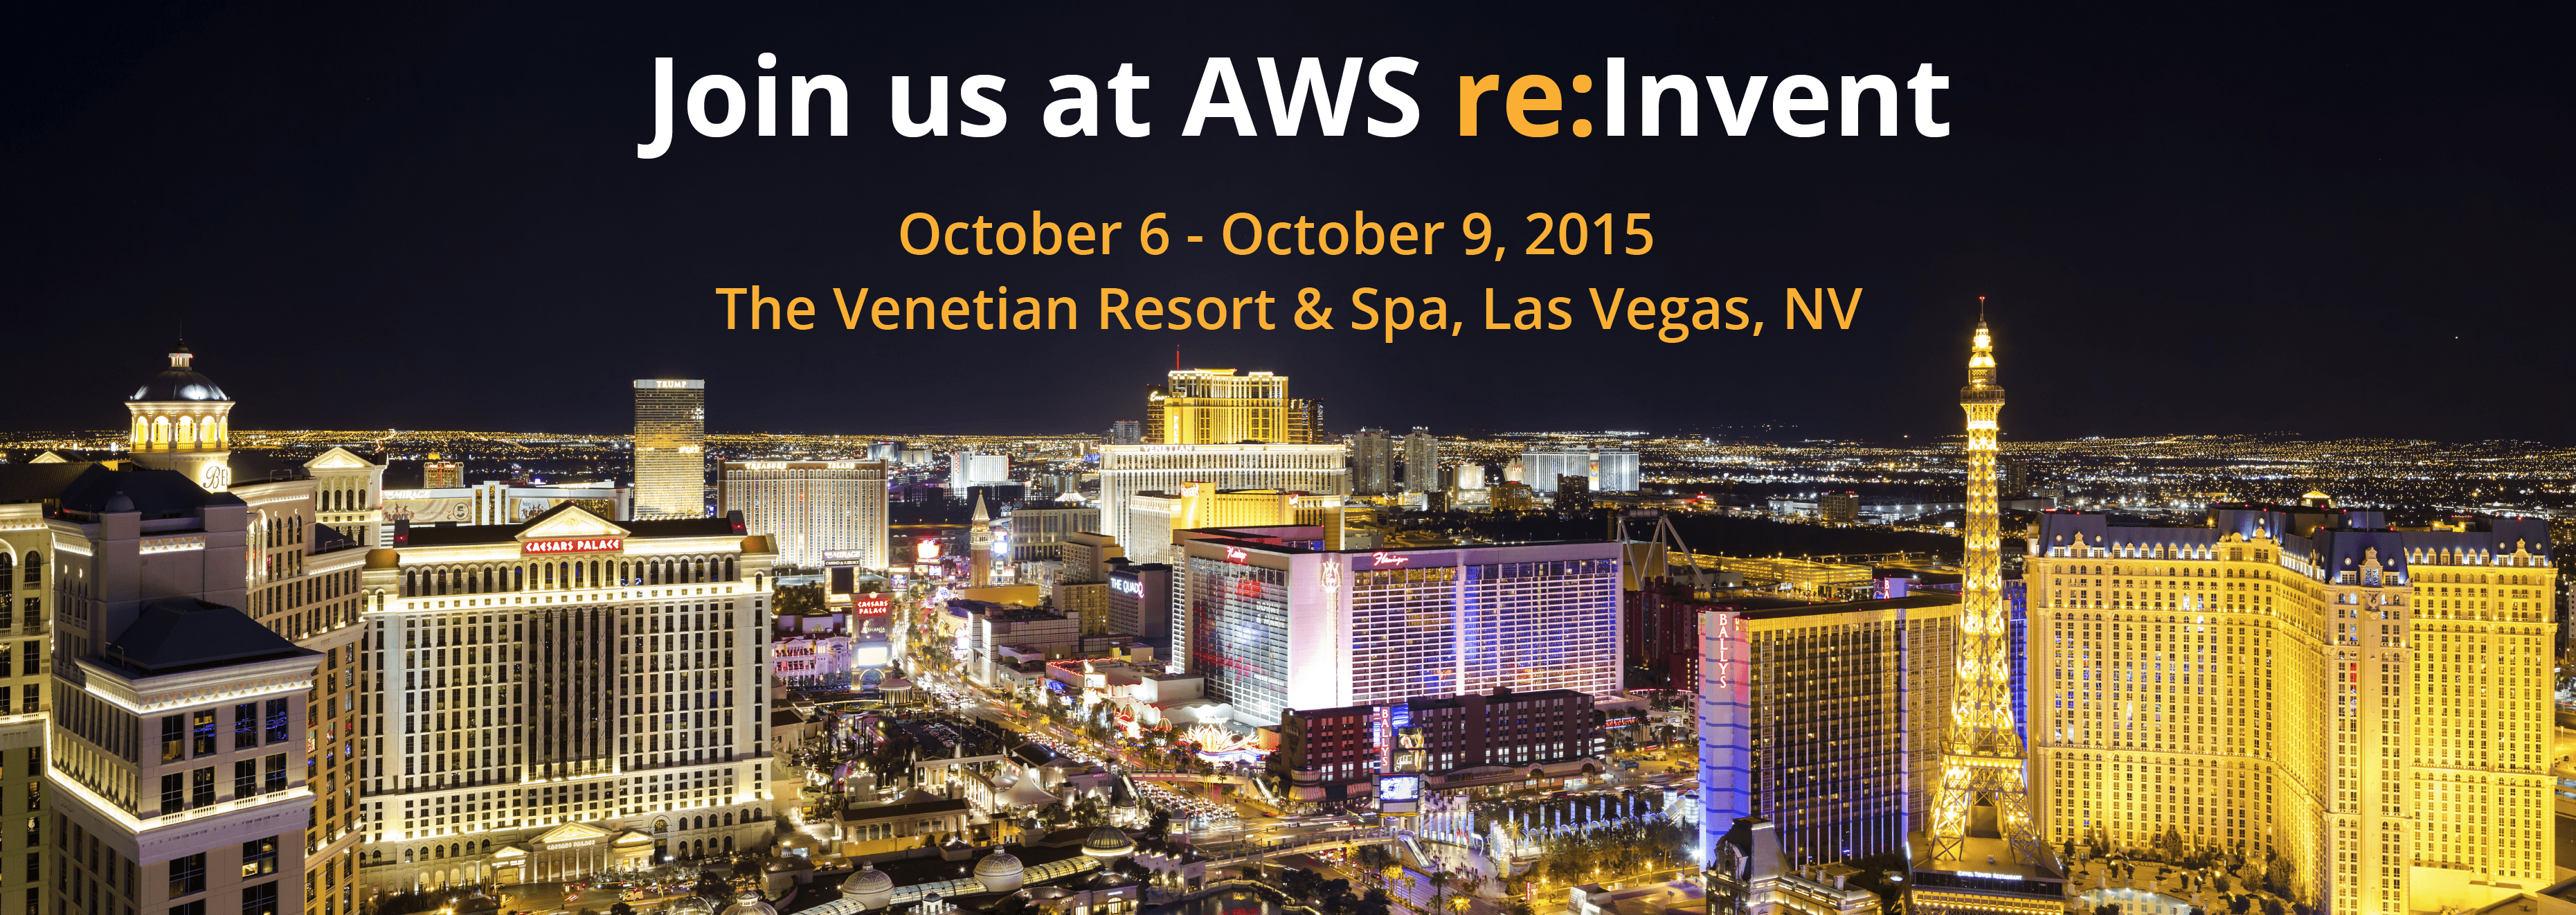 join us at aws re:invent